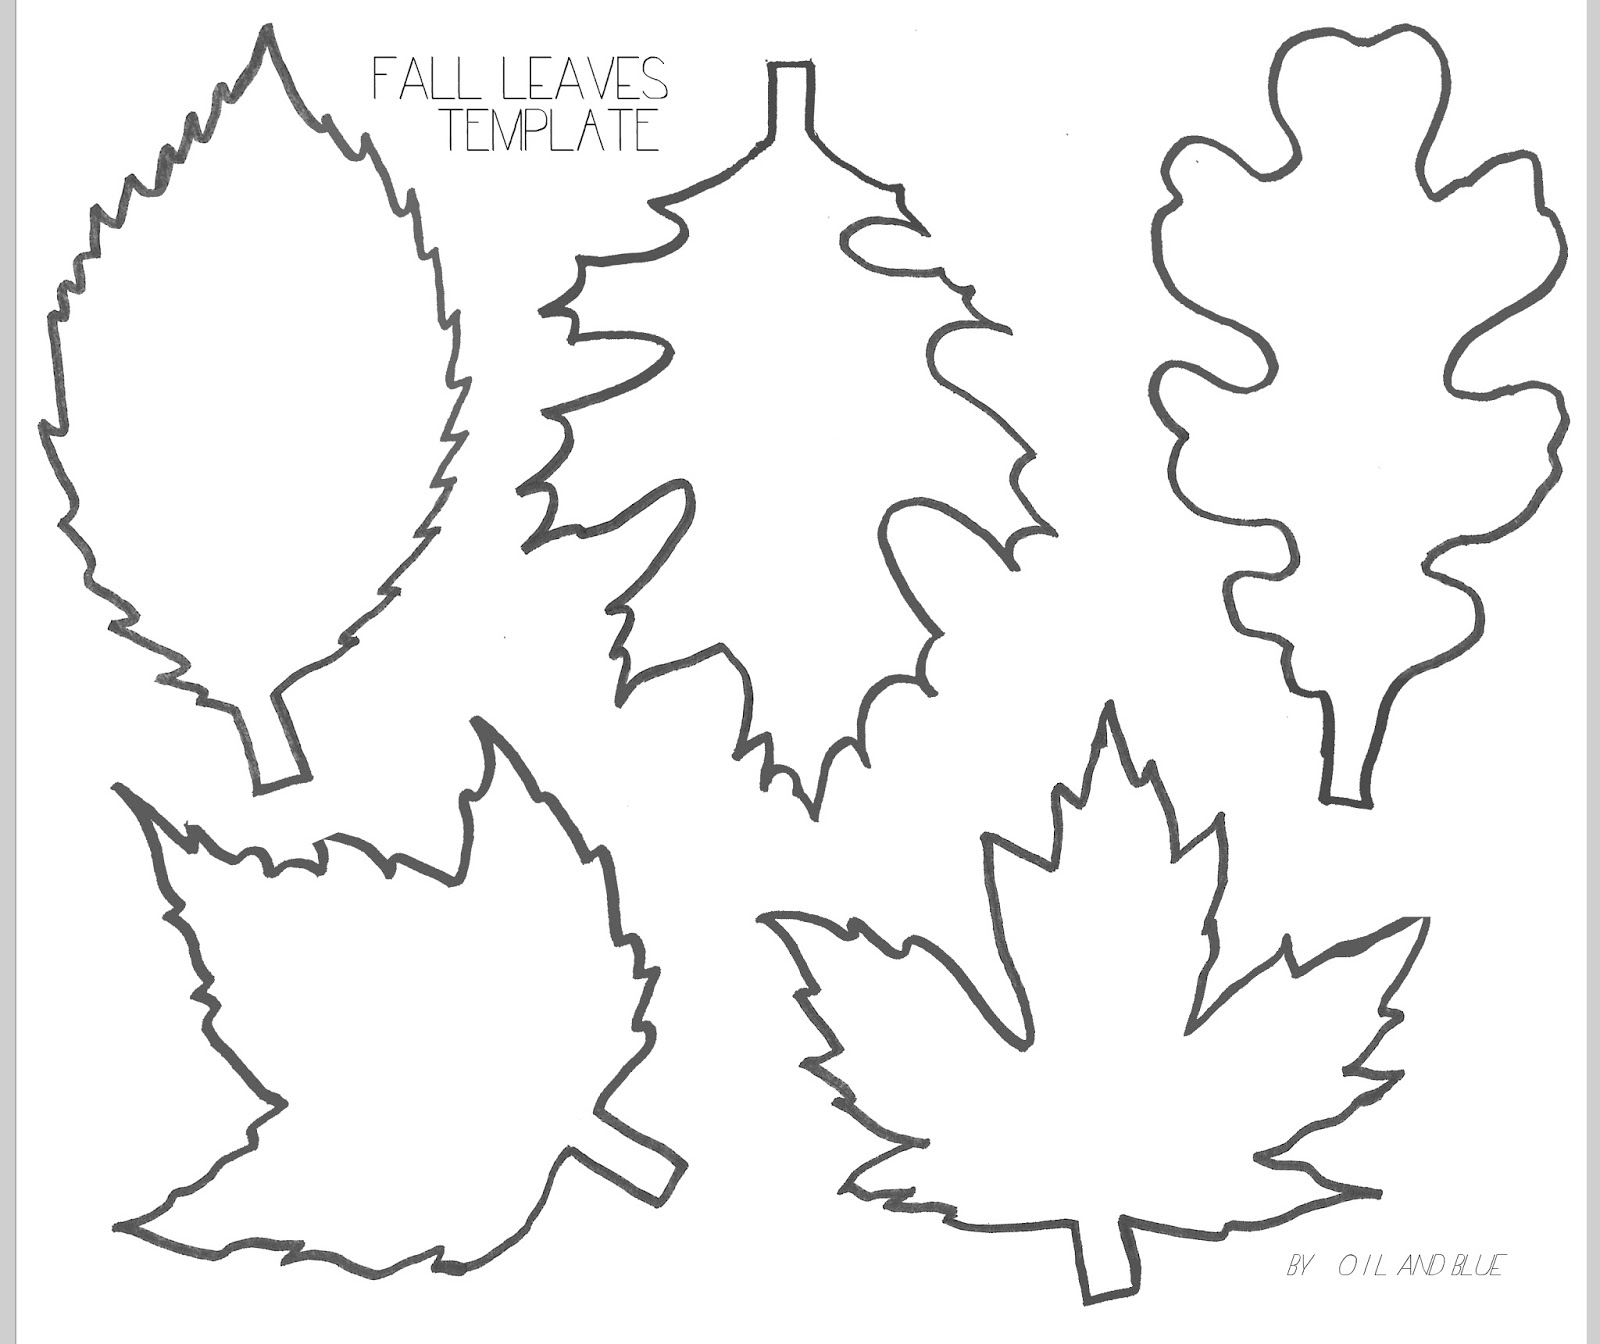 Fall leaves print out